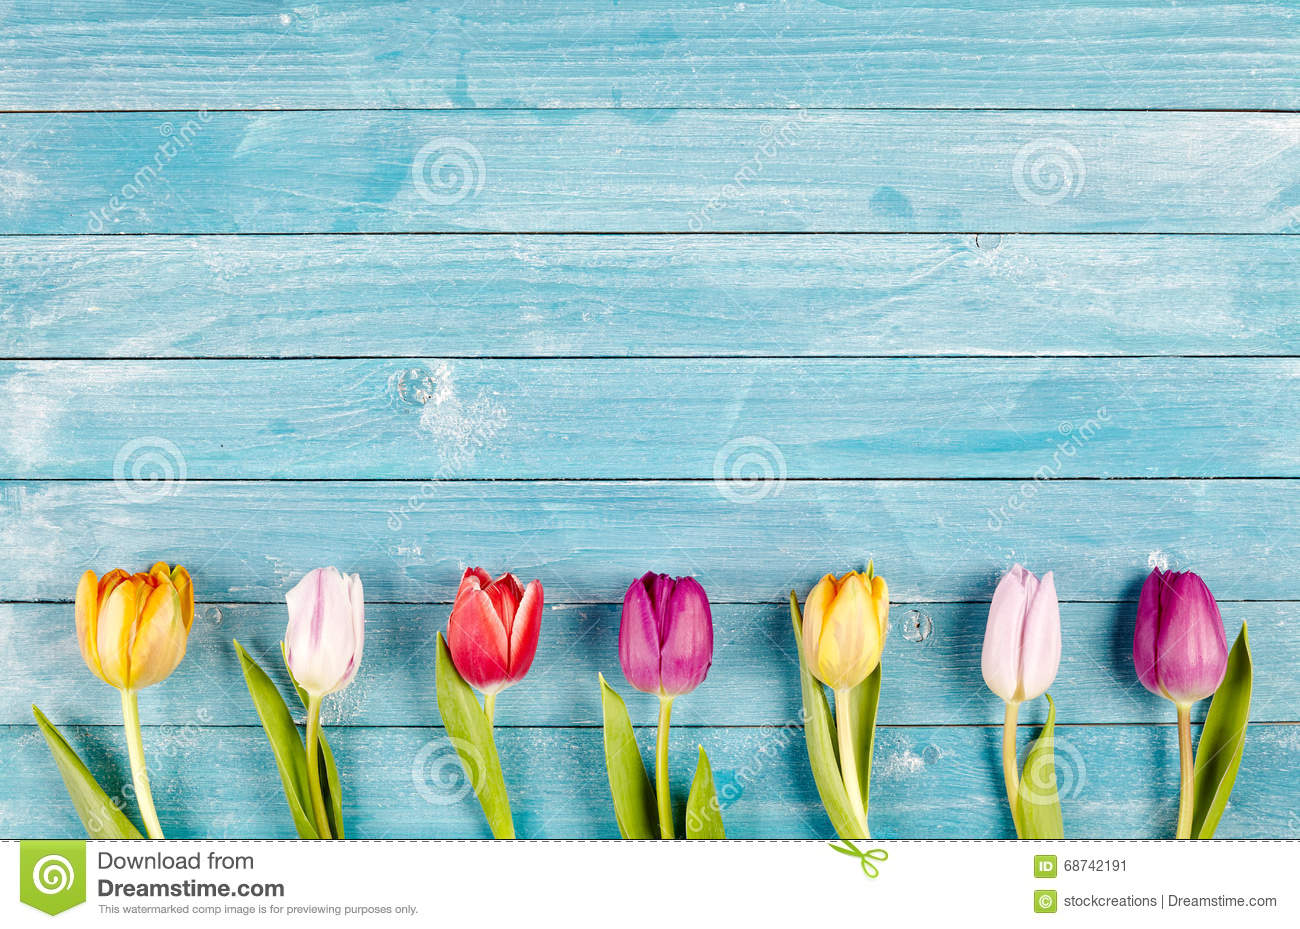 Border of fresh multicolored spring tulips